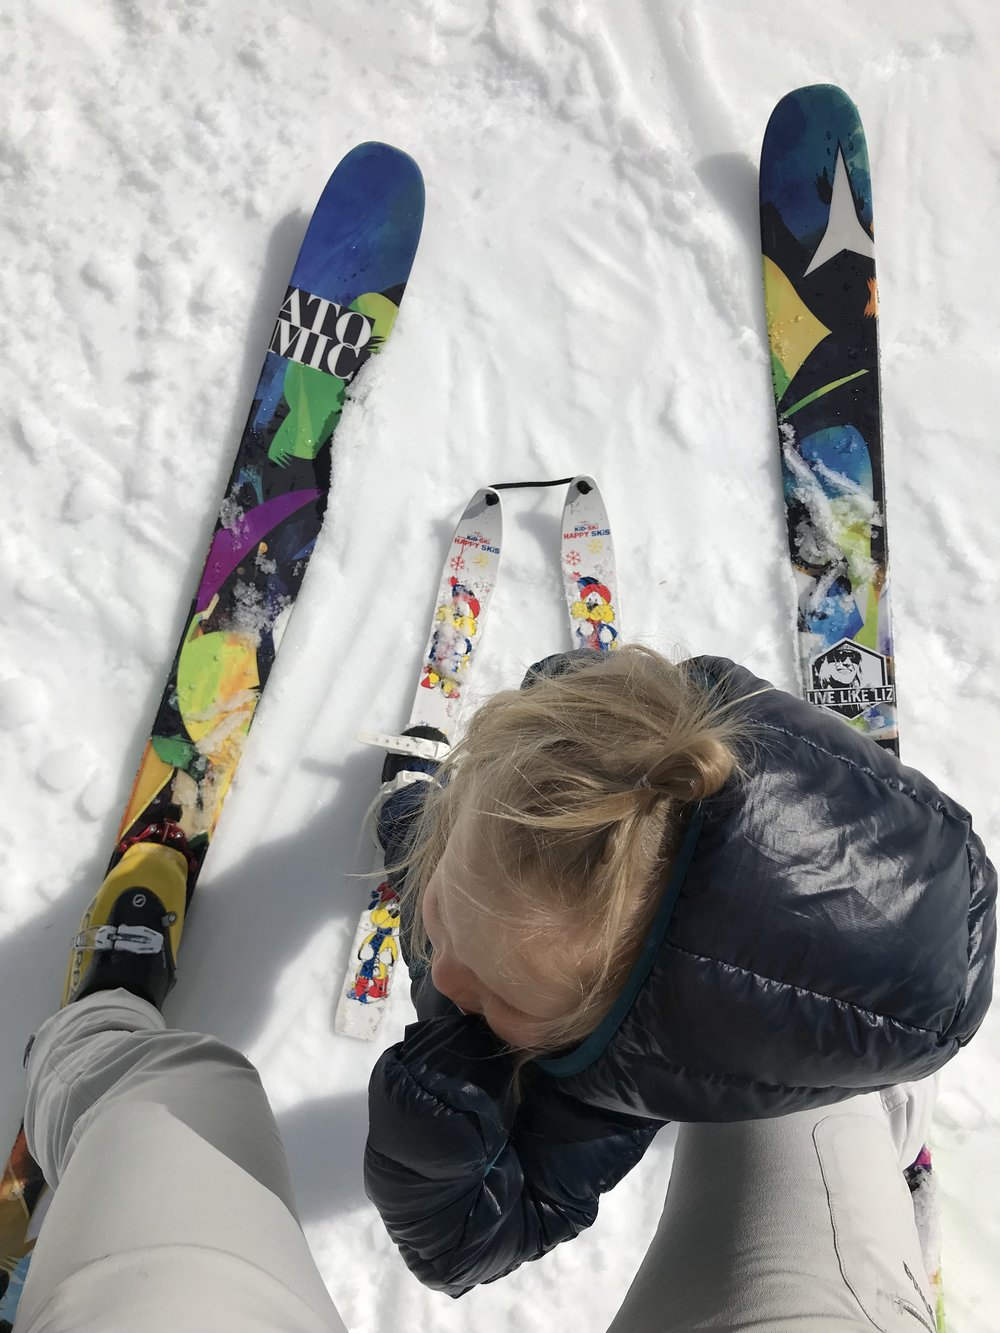 A good way to get your toddler skiing.